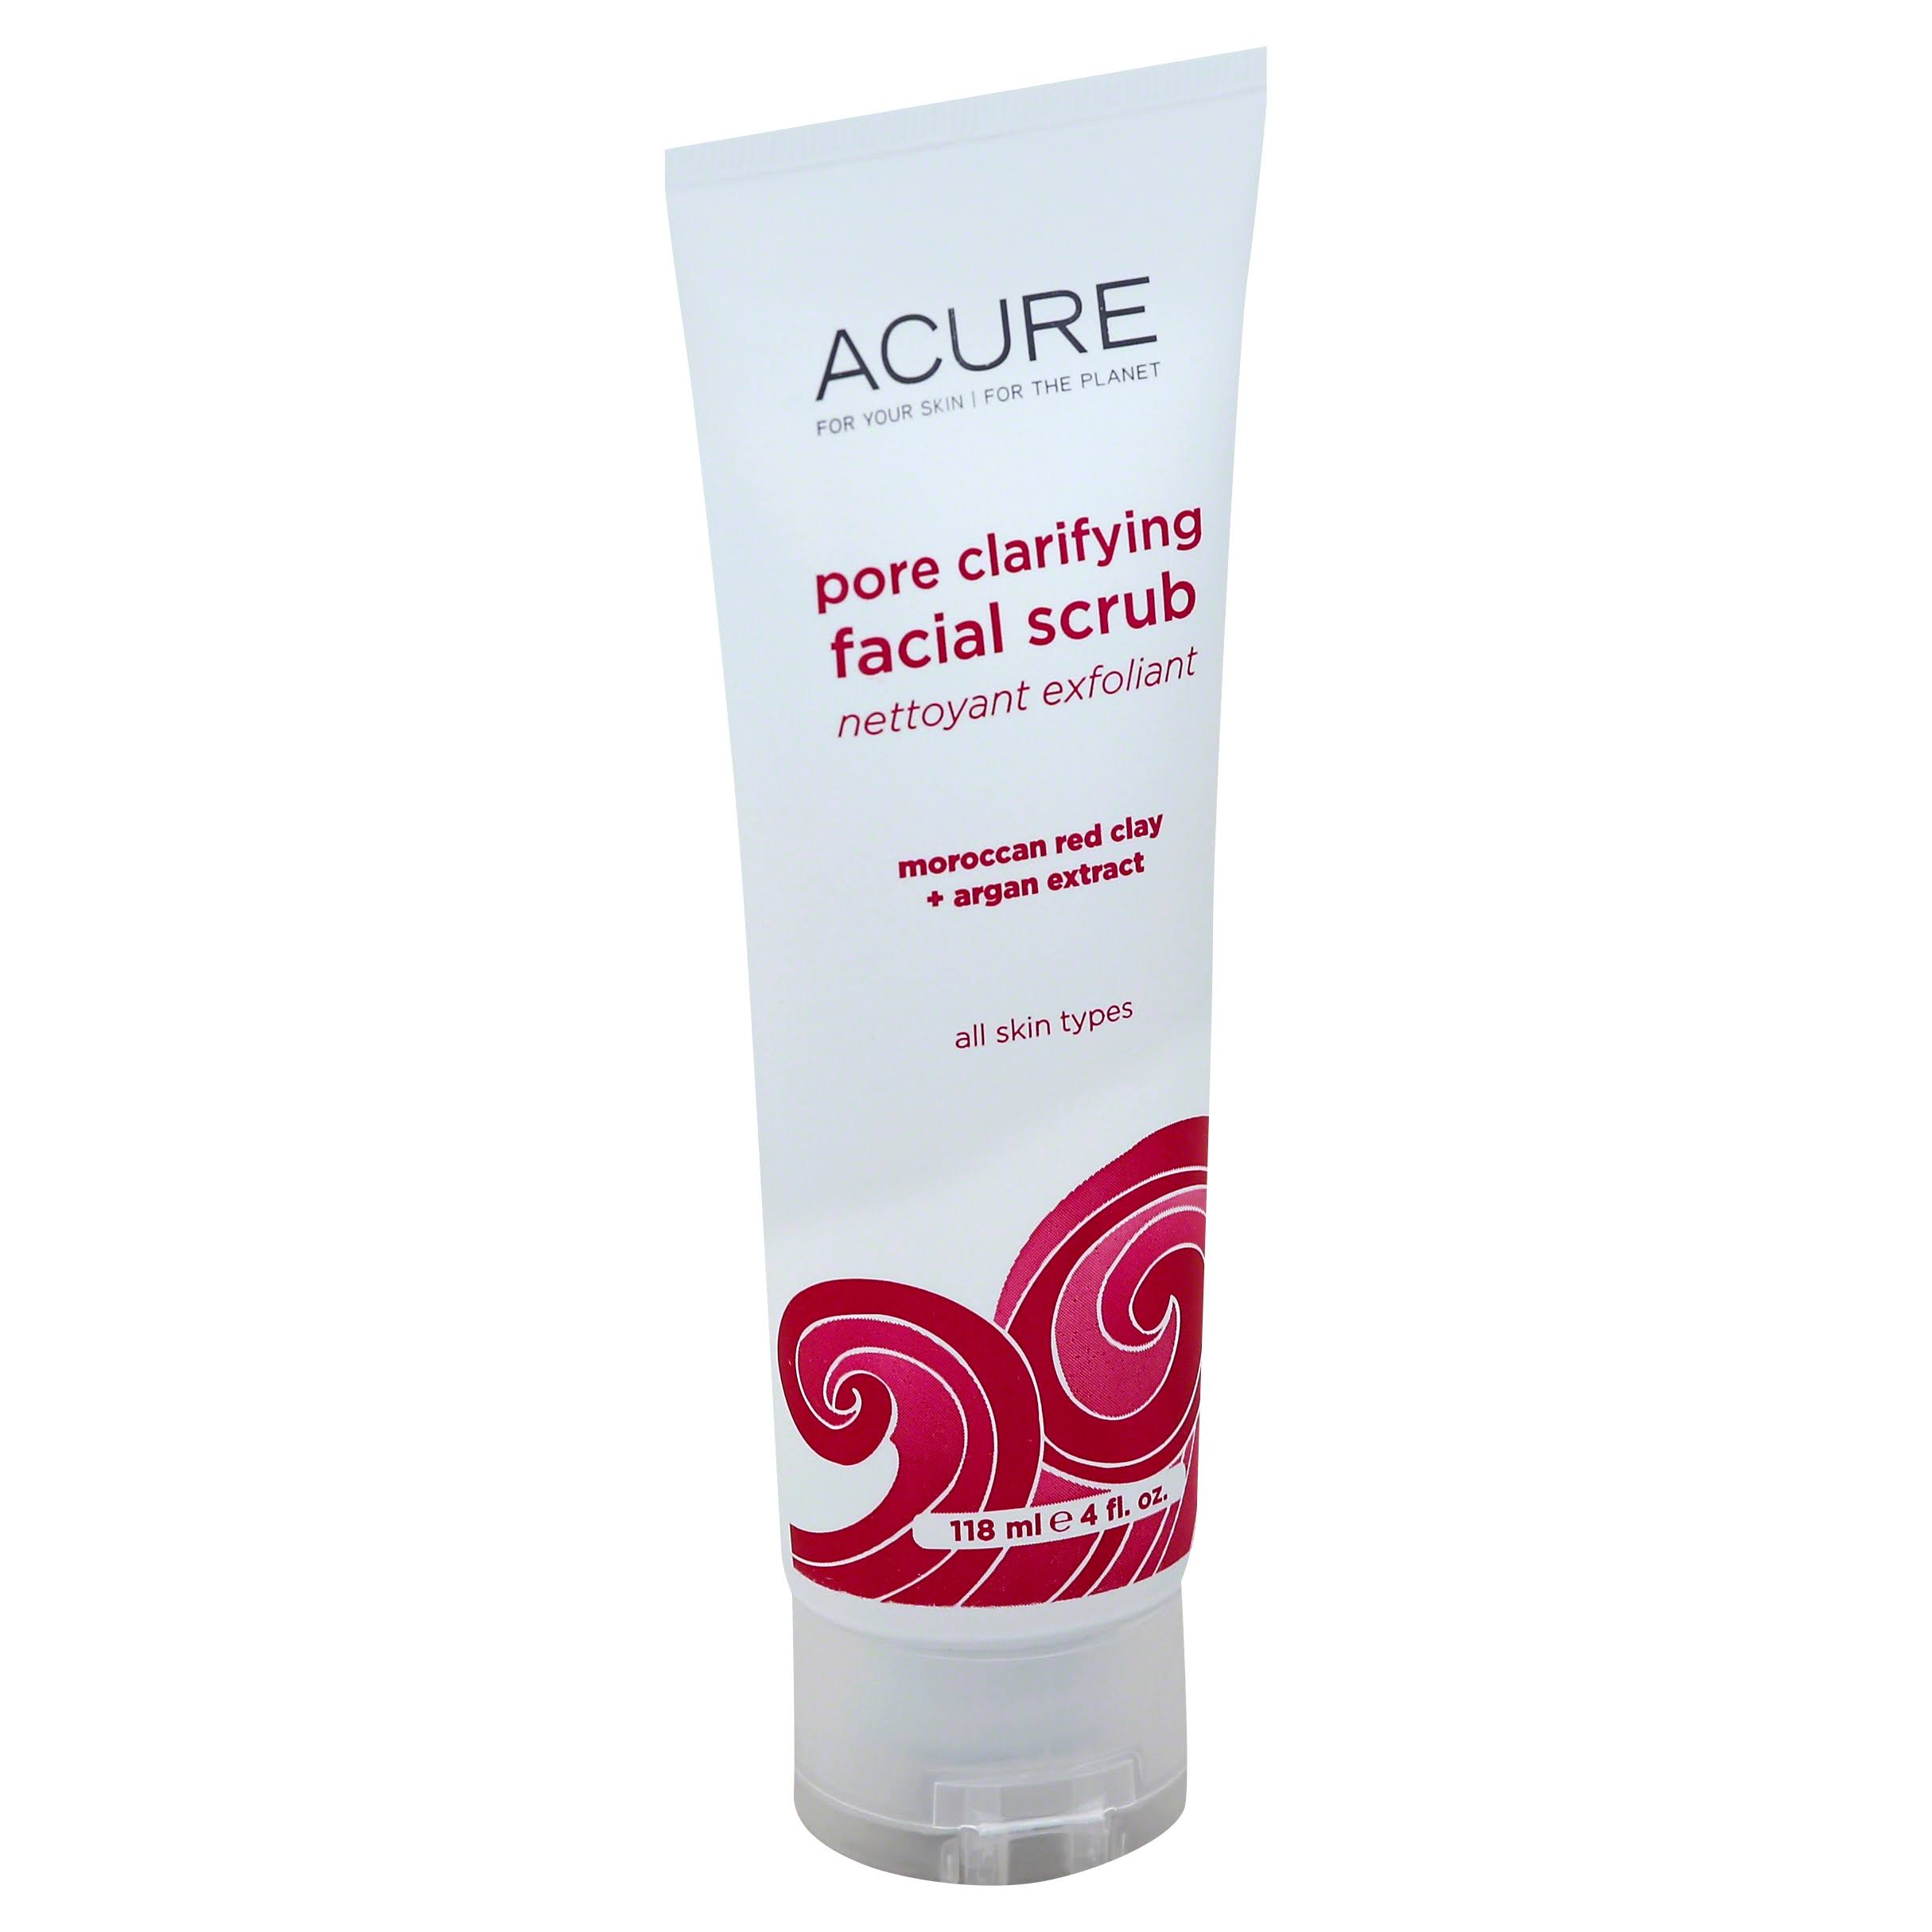 Acure Organics Pore Minimizing Facial Scrub - 4oz, Moroccan Red Cay and Argan Stem Cell